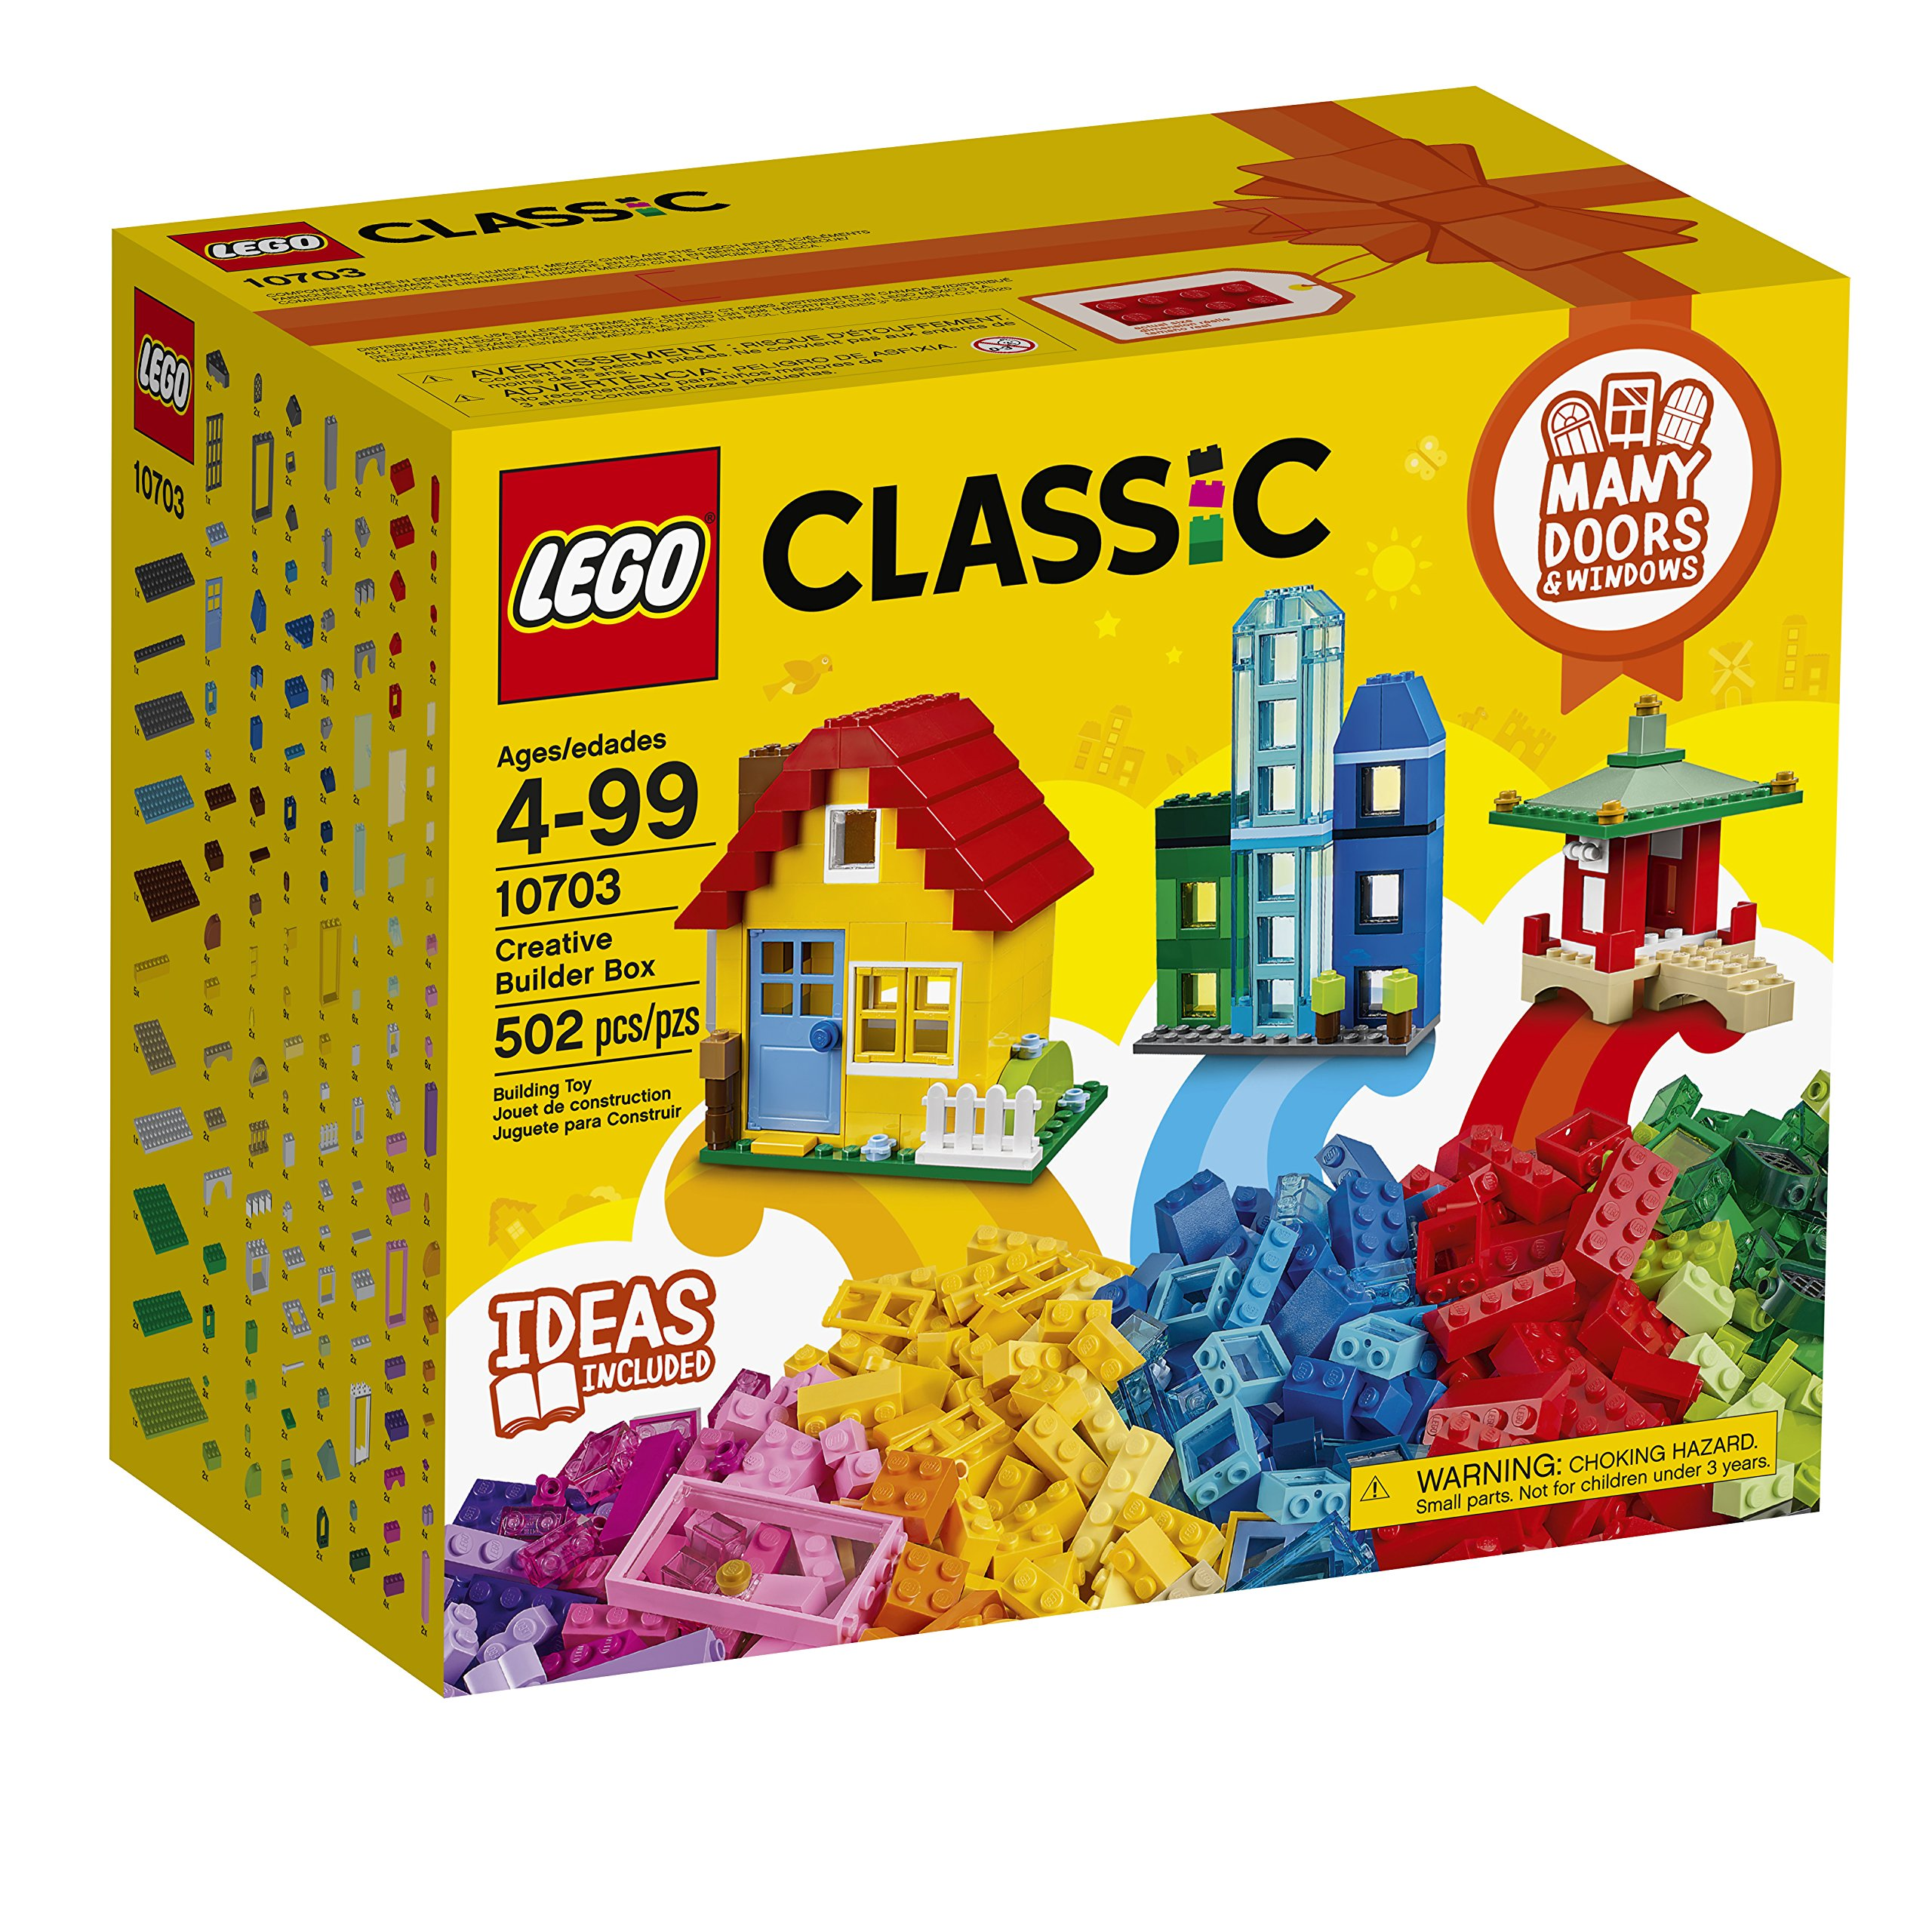 LEGO Classic Creative Builder Box 10703 (Exclusivo): Amazon.es: Juguetes y juegos